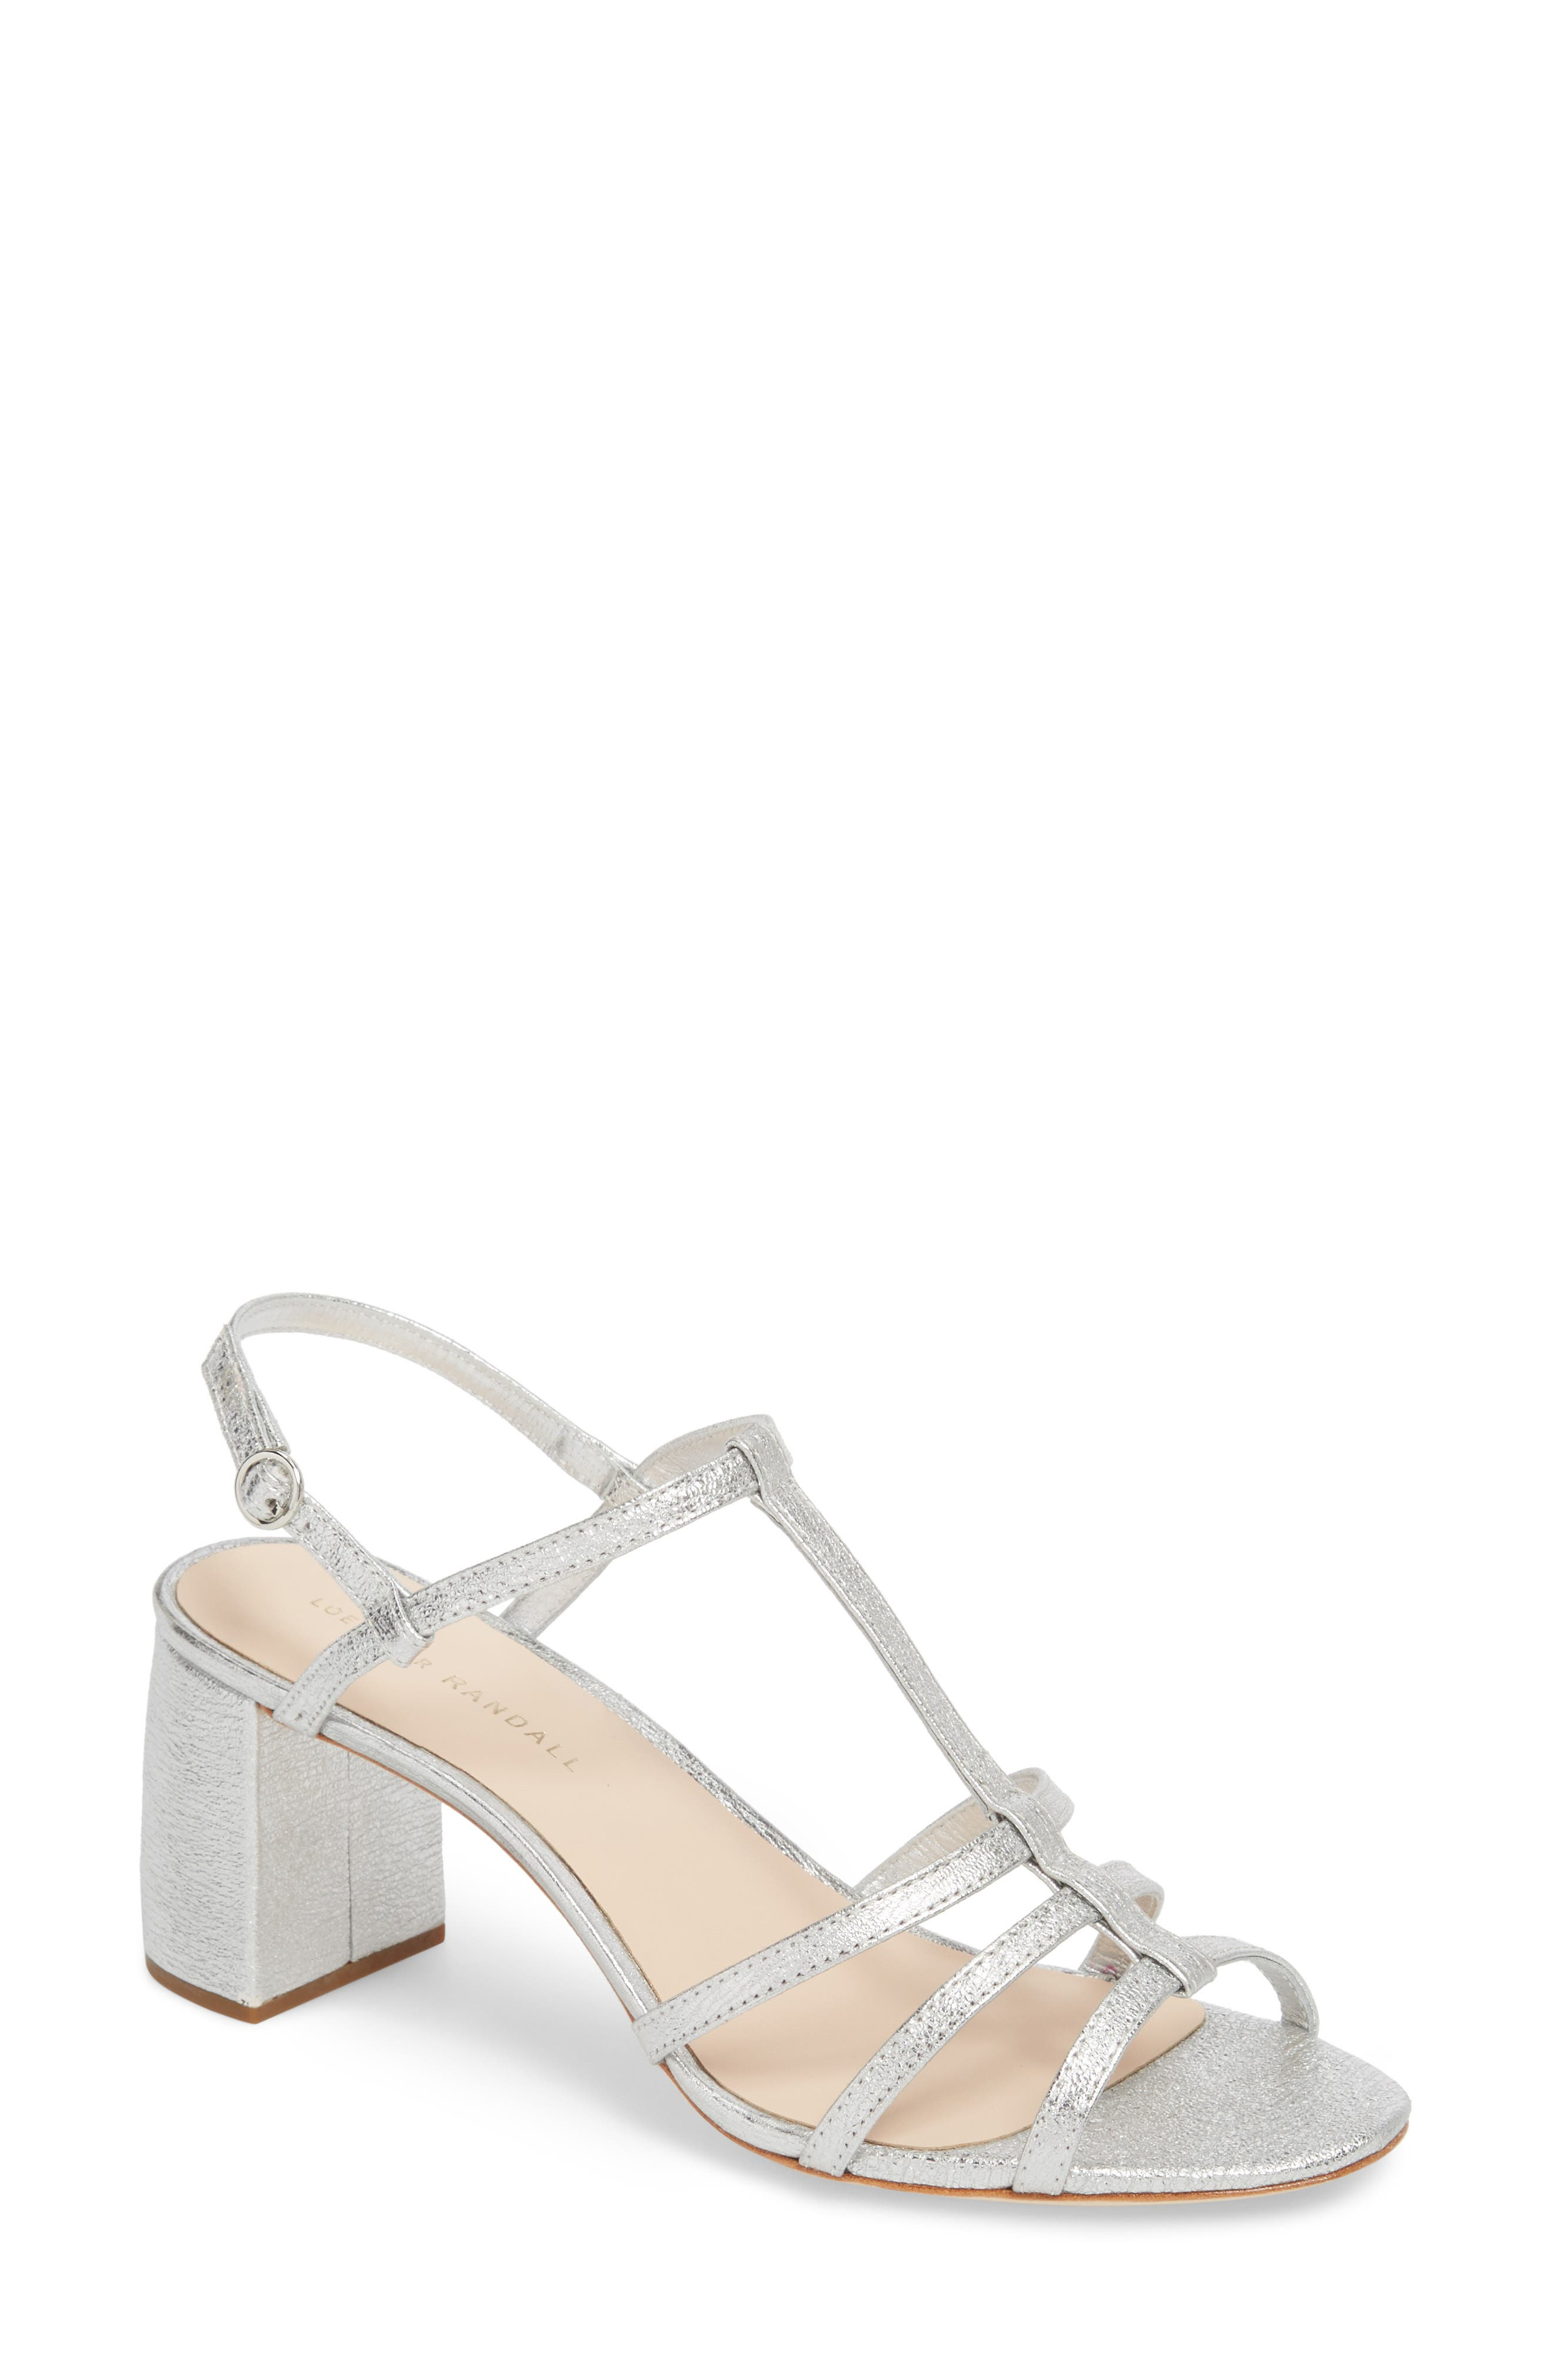 Loeffler Randall Elena sandals buy cheap recommend cheap best wholesale sale low price fee shipping amazon footaction clearance visa payment NvPl0Z25EM